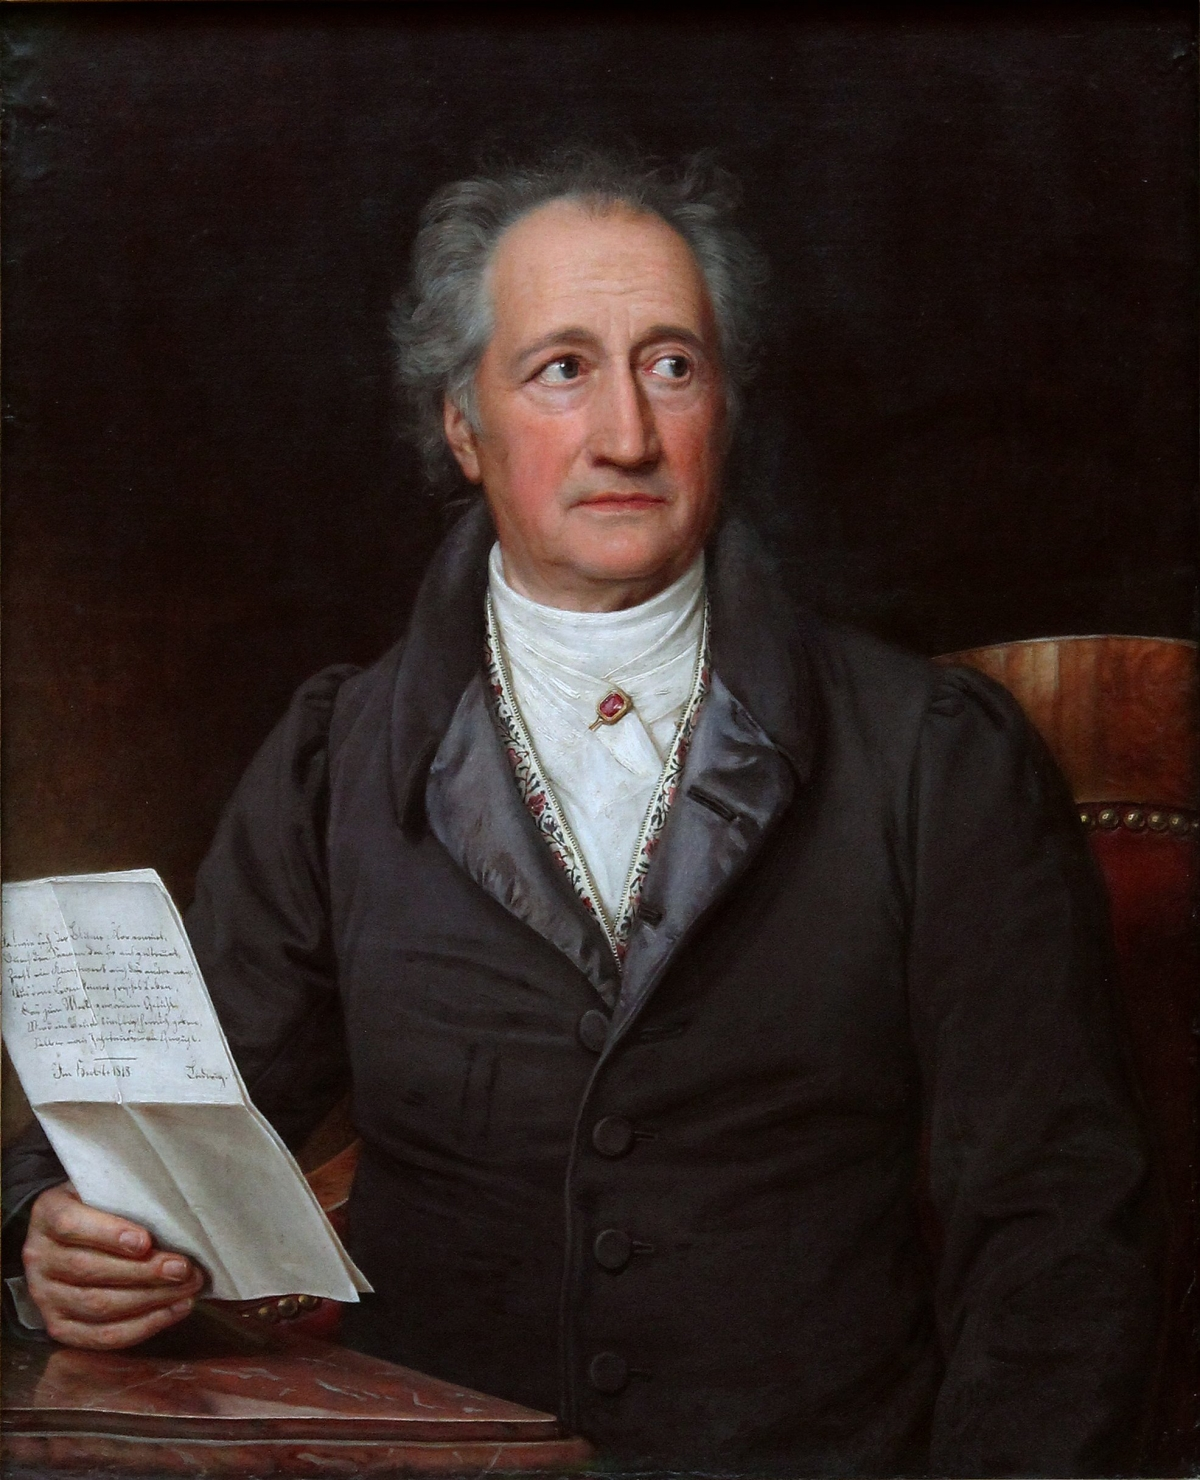 German writer, scientist, and politician, acclaimed as one of history's greatest geniuses, Johan Wolfgang von Goethe was more than 6 feet tall.